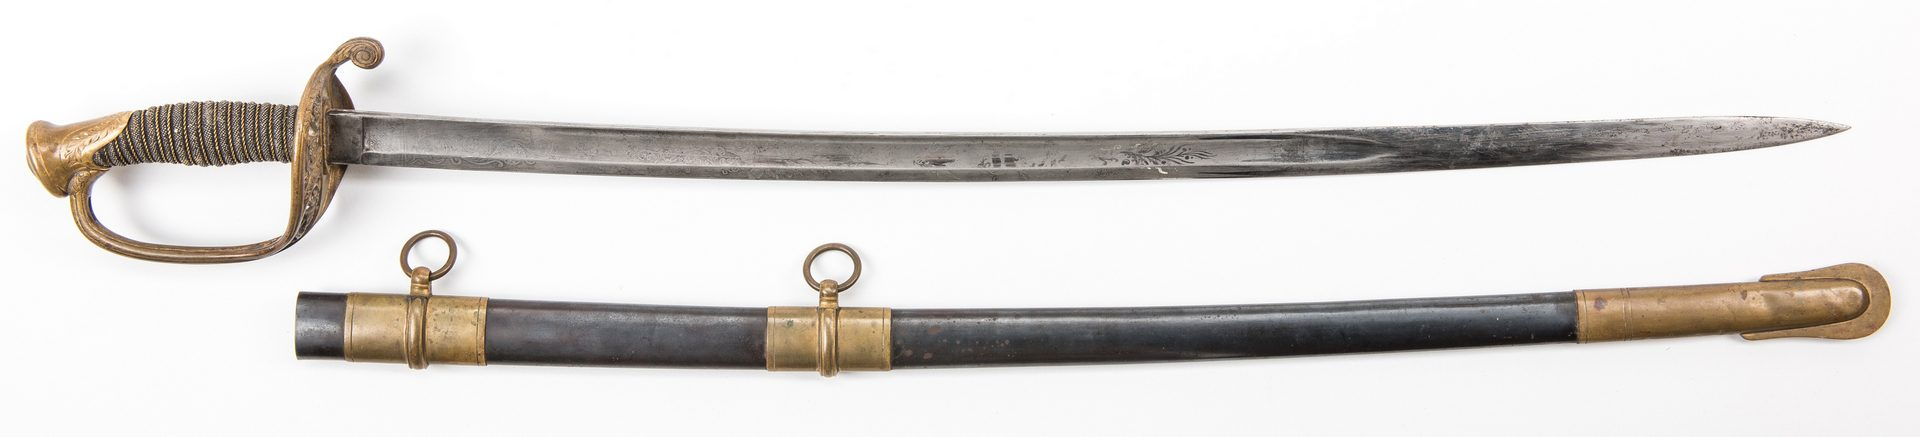 Lot 527: Civil War Ames Model 1850 Foot Officer's Sword w/ Scabbard